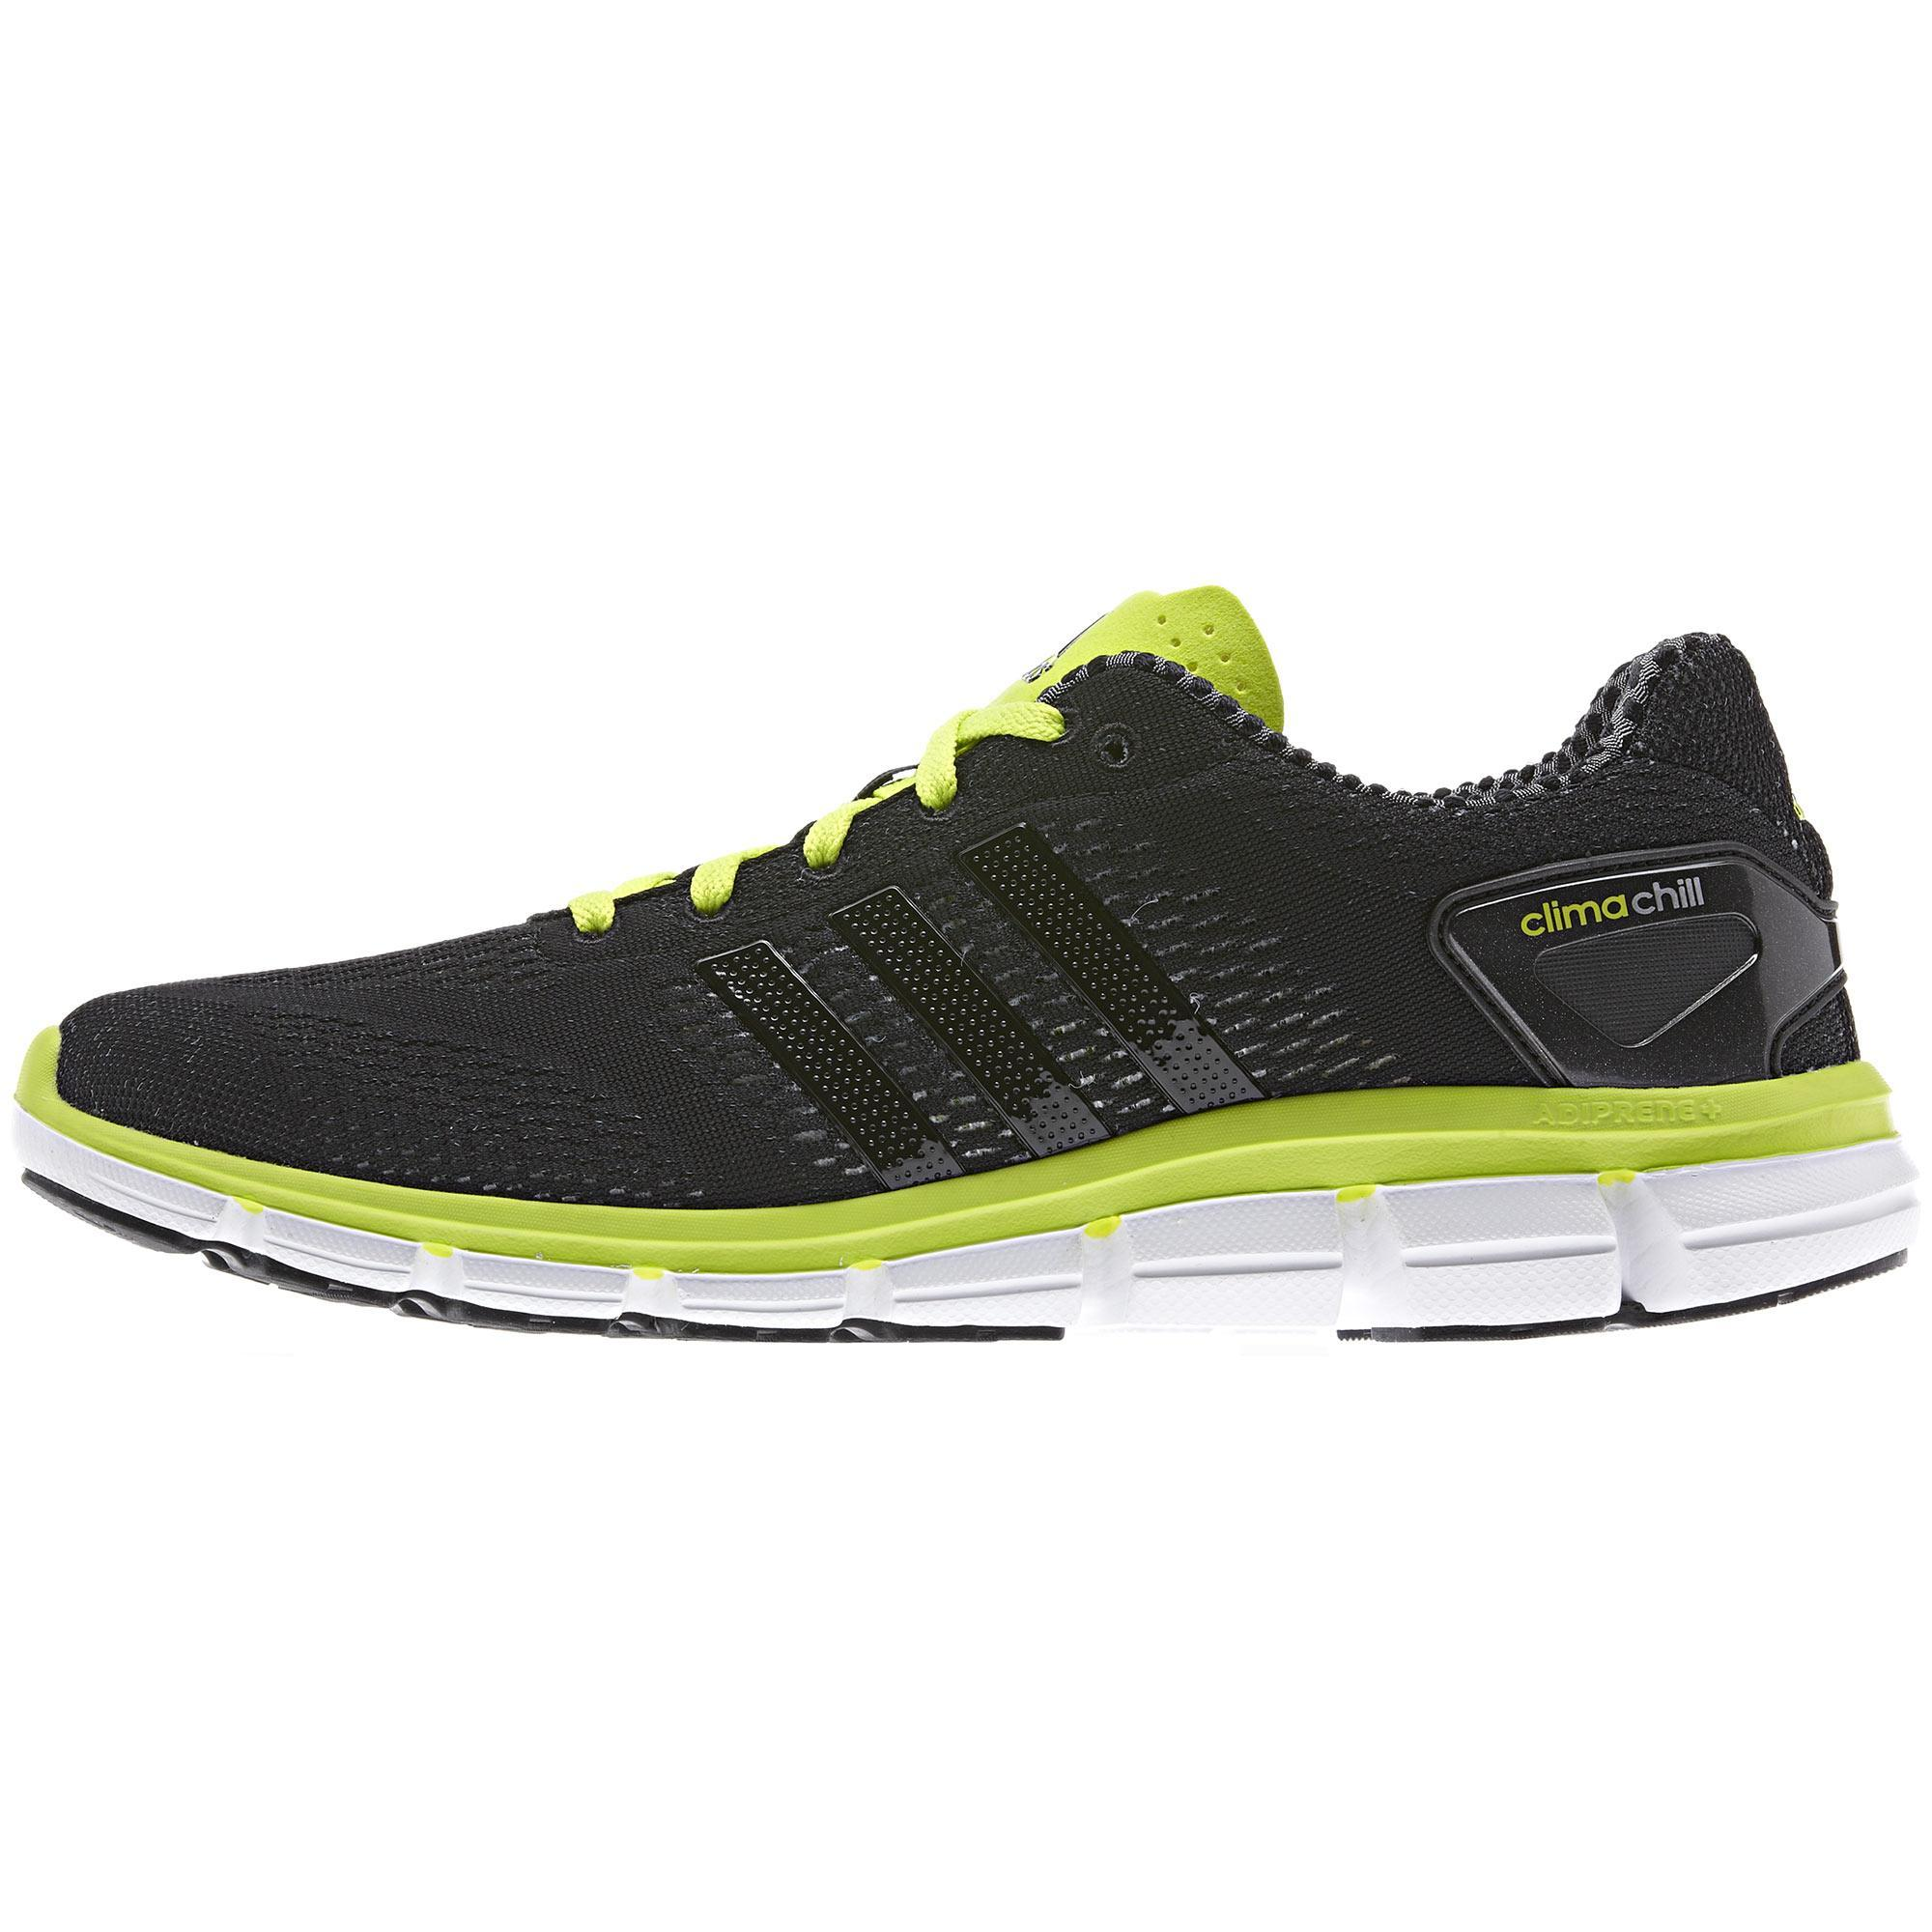 Best Inserts For Mens Running Shoes